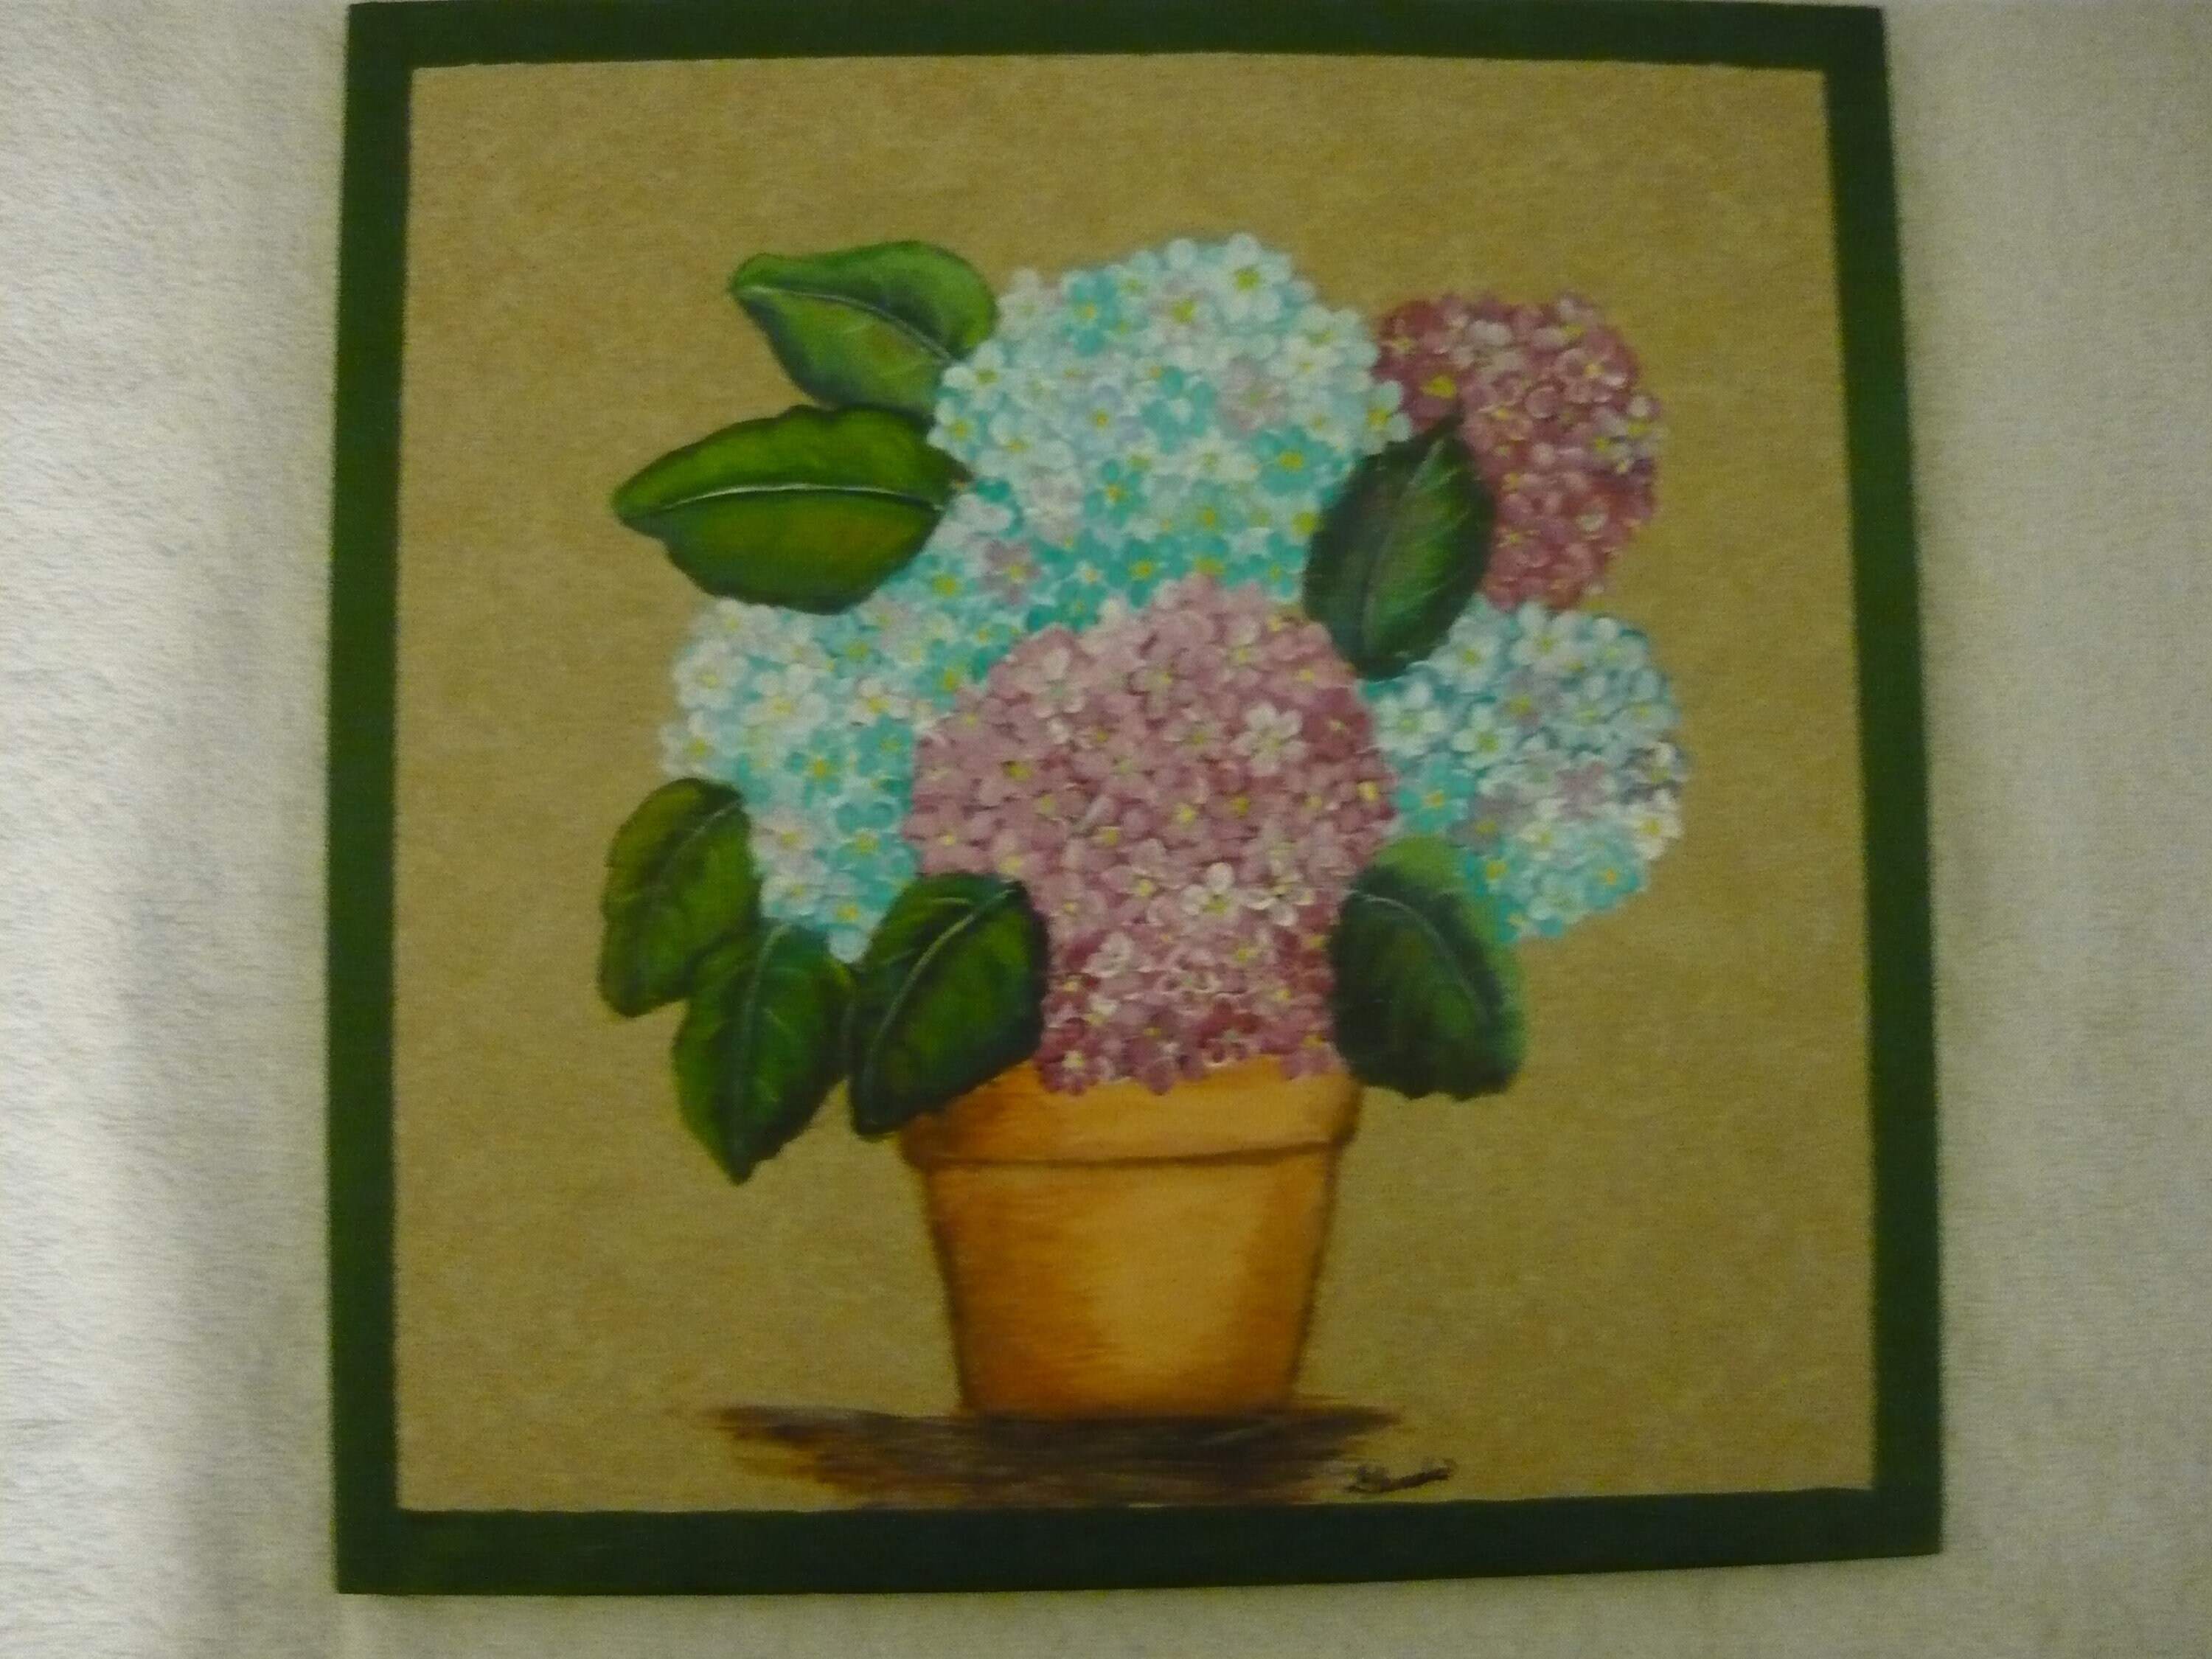 Hand Painted Ceramic X Tile With Blue And Pink Hydrangeas In Pot - 12x12 painted ceramic tile